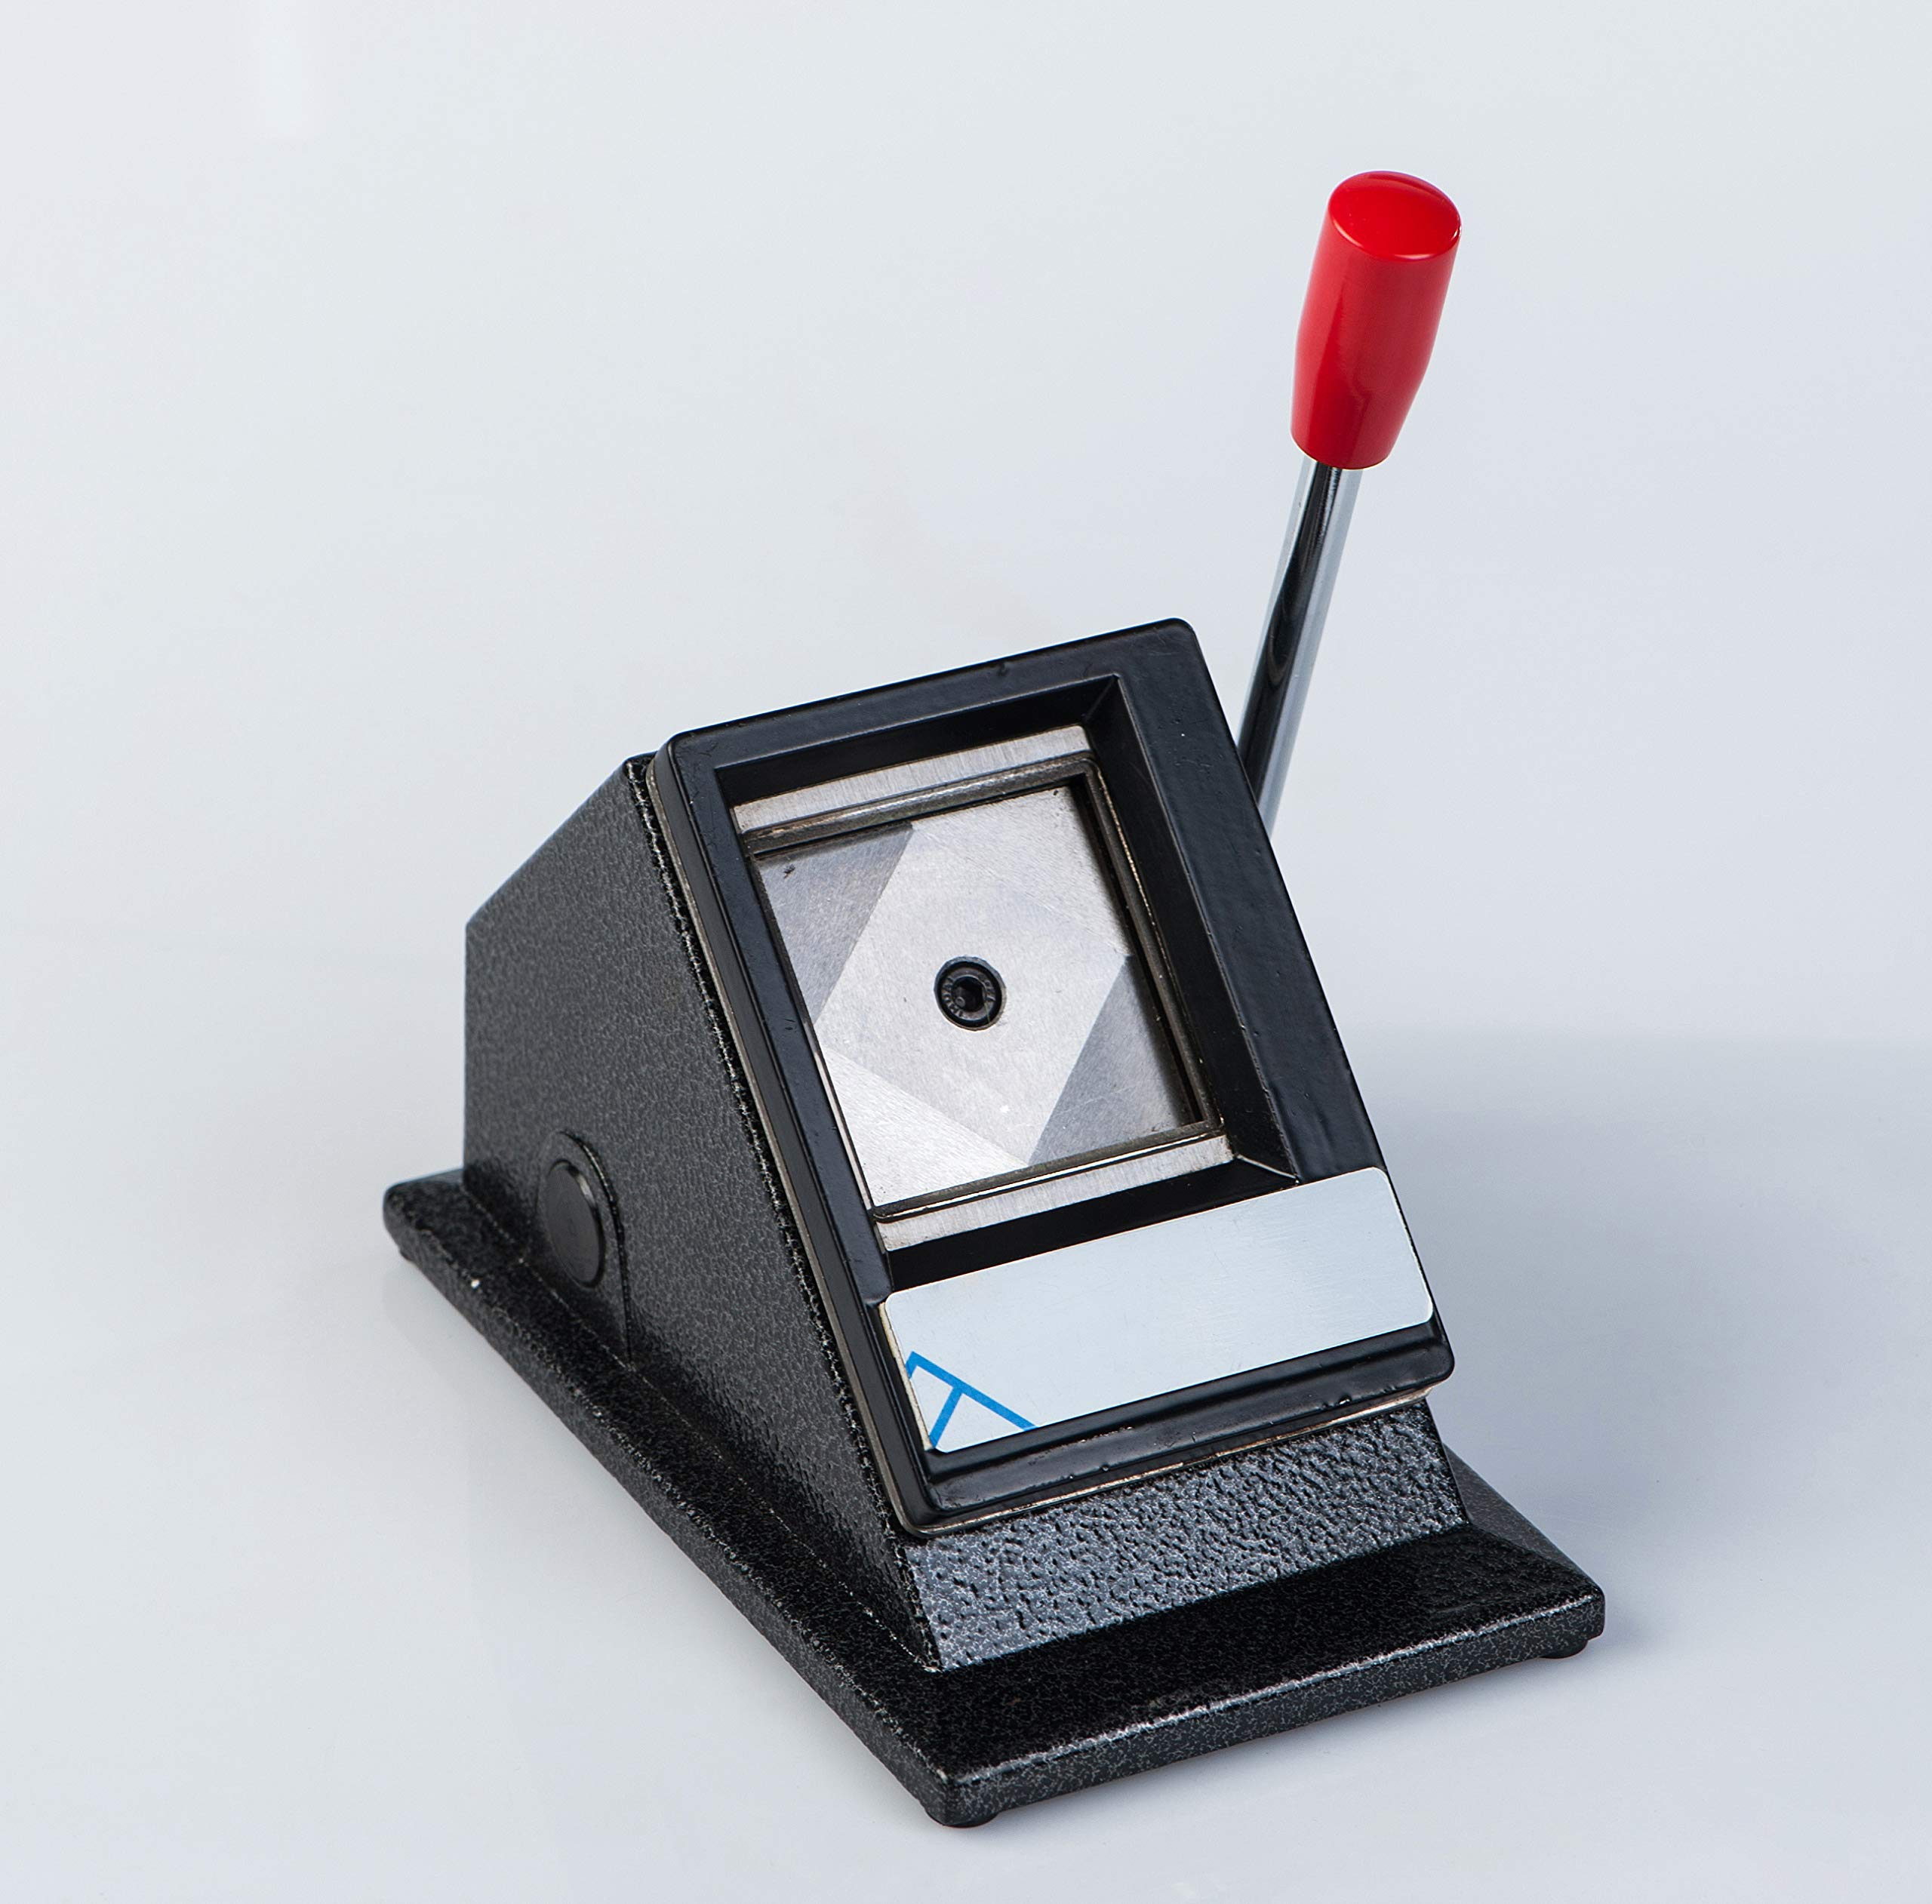 BNC Table Top Passport ID Photo Manual Cutter Punch 2 X 2 Inch